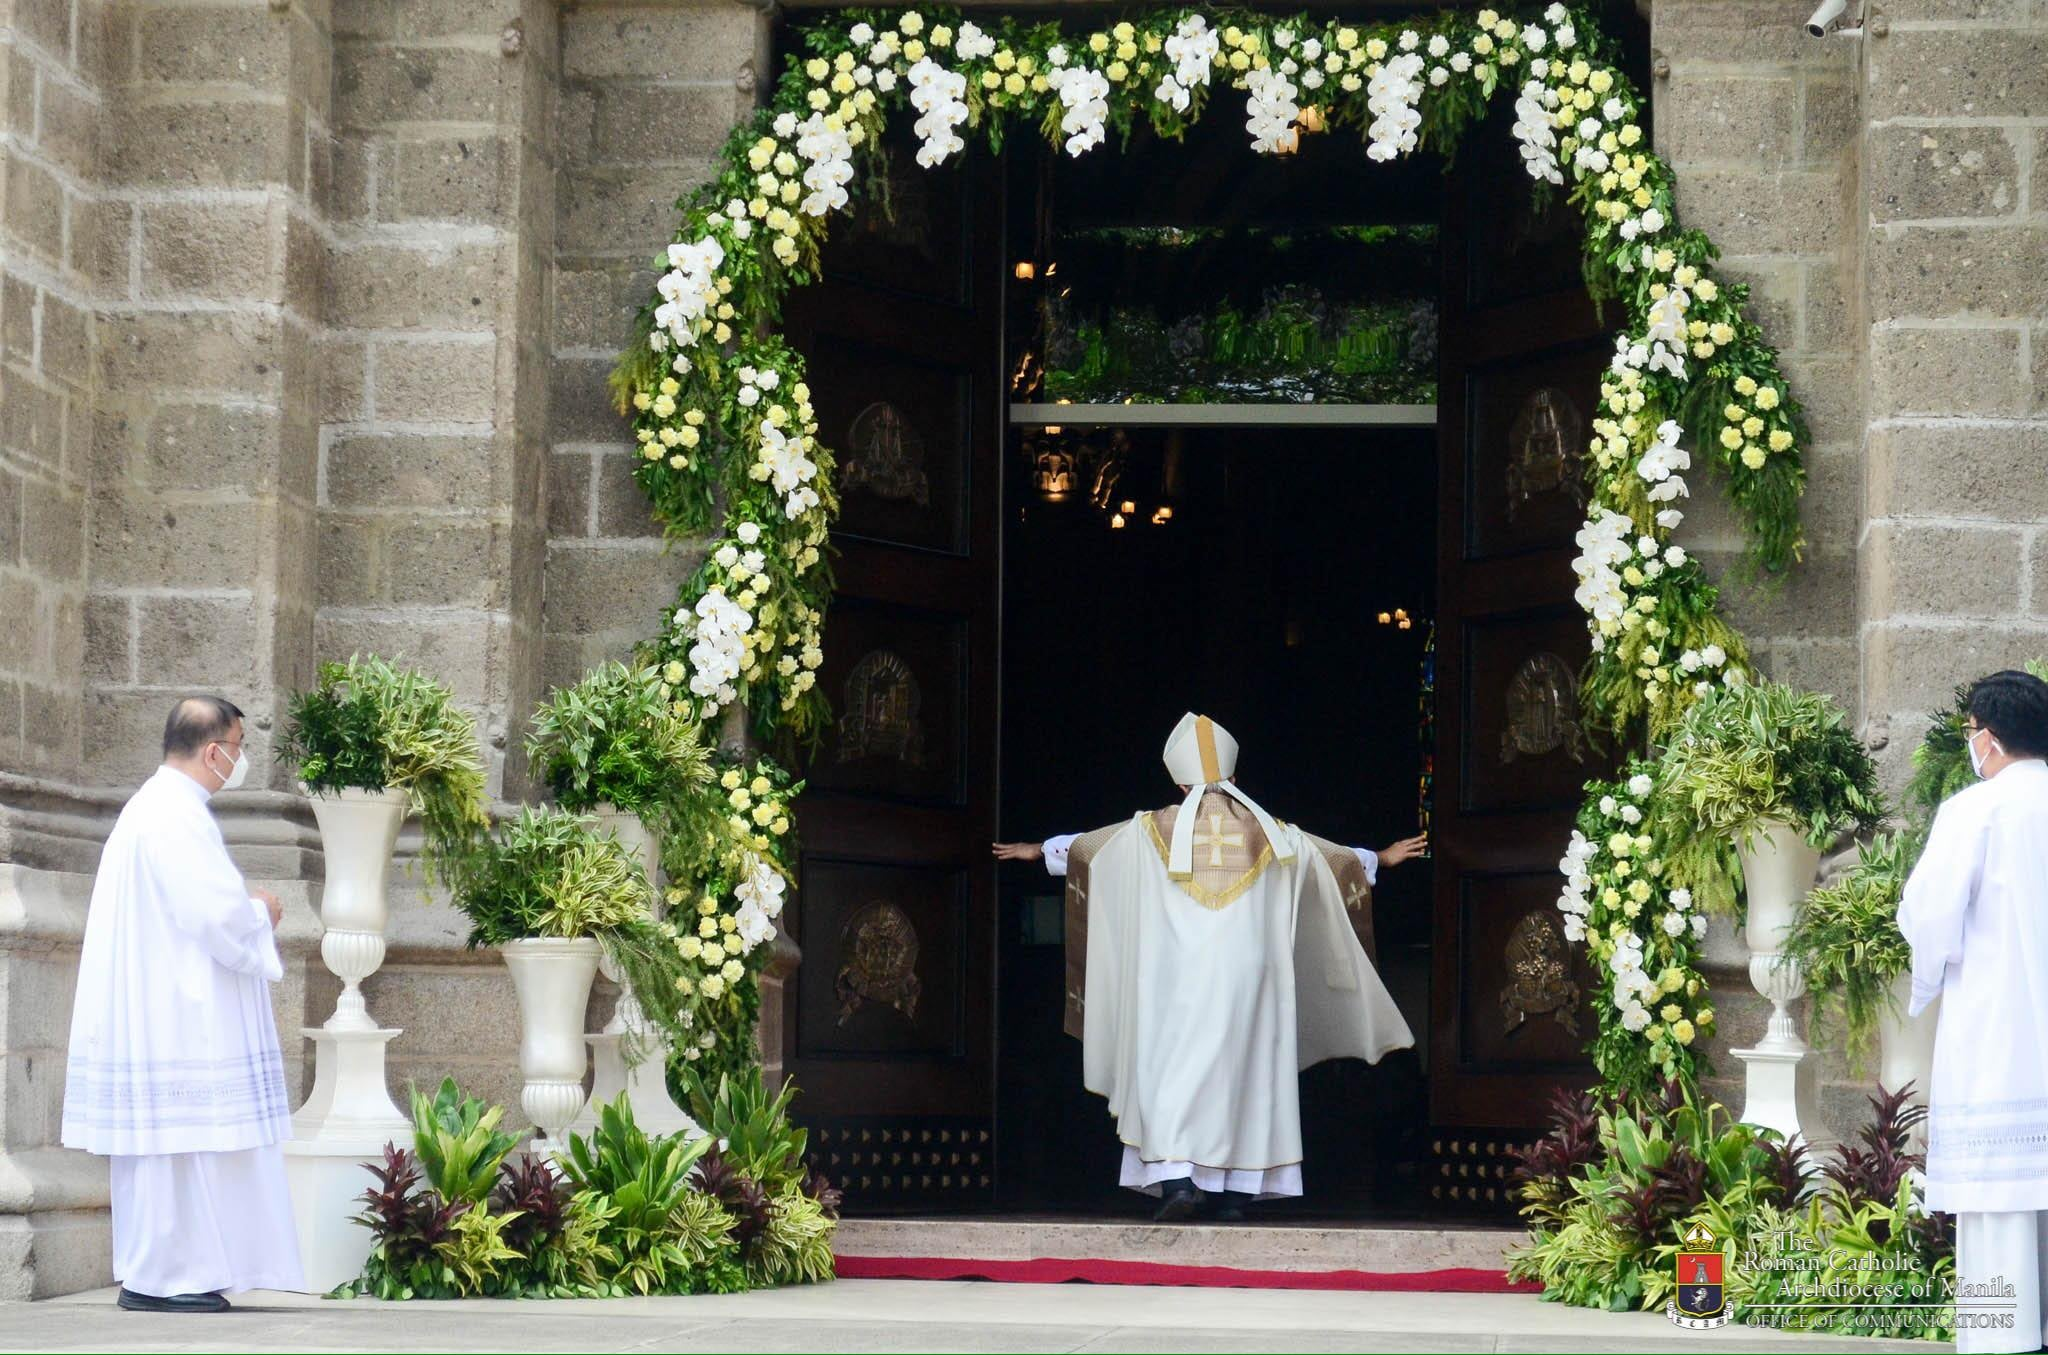 Bishop Pabillo begins opening of Jubilee Doors in the Archdiocese of Manila